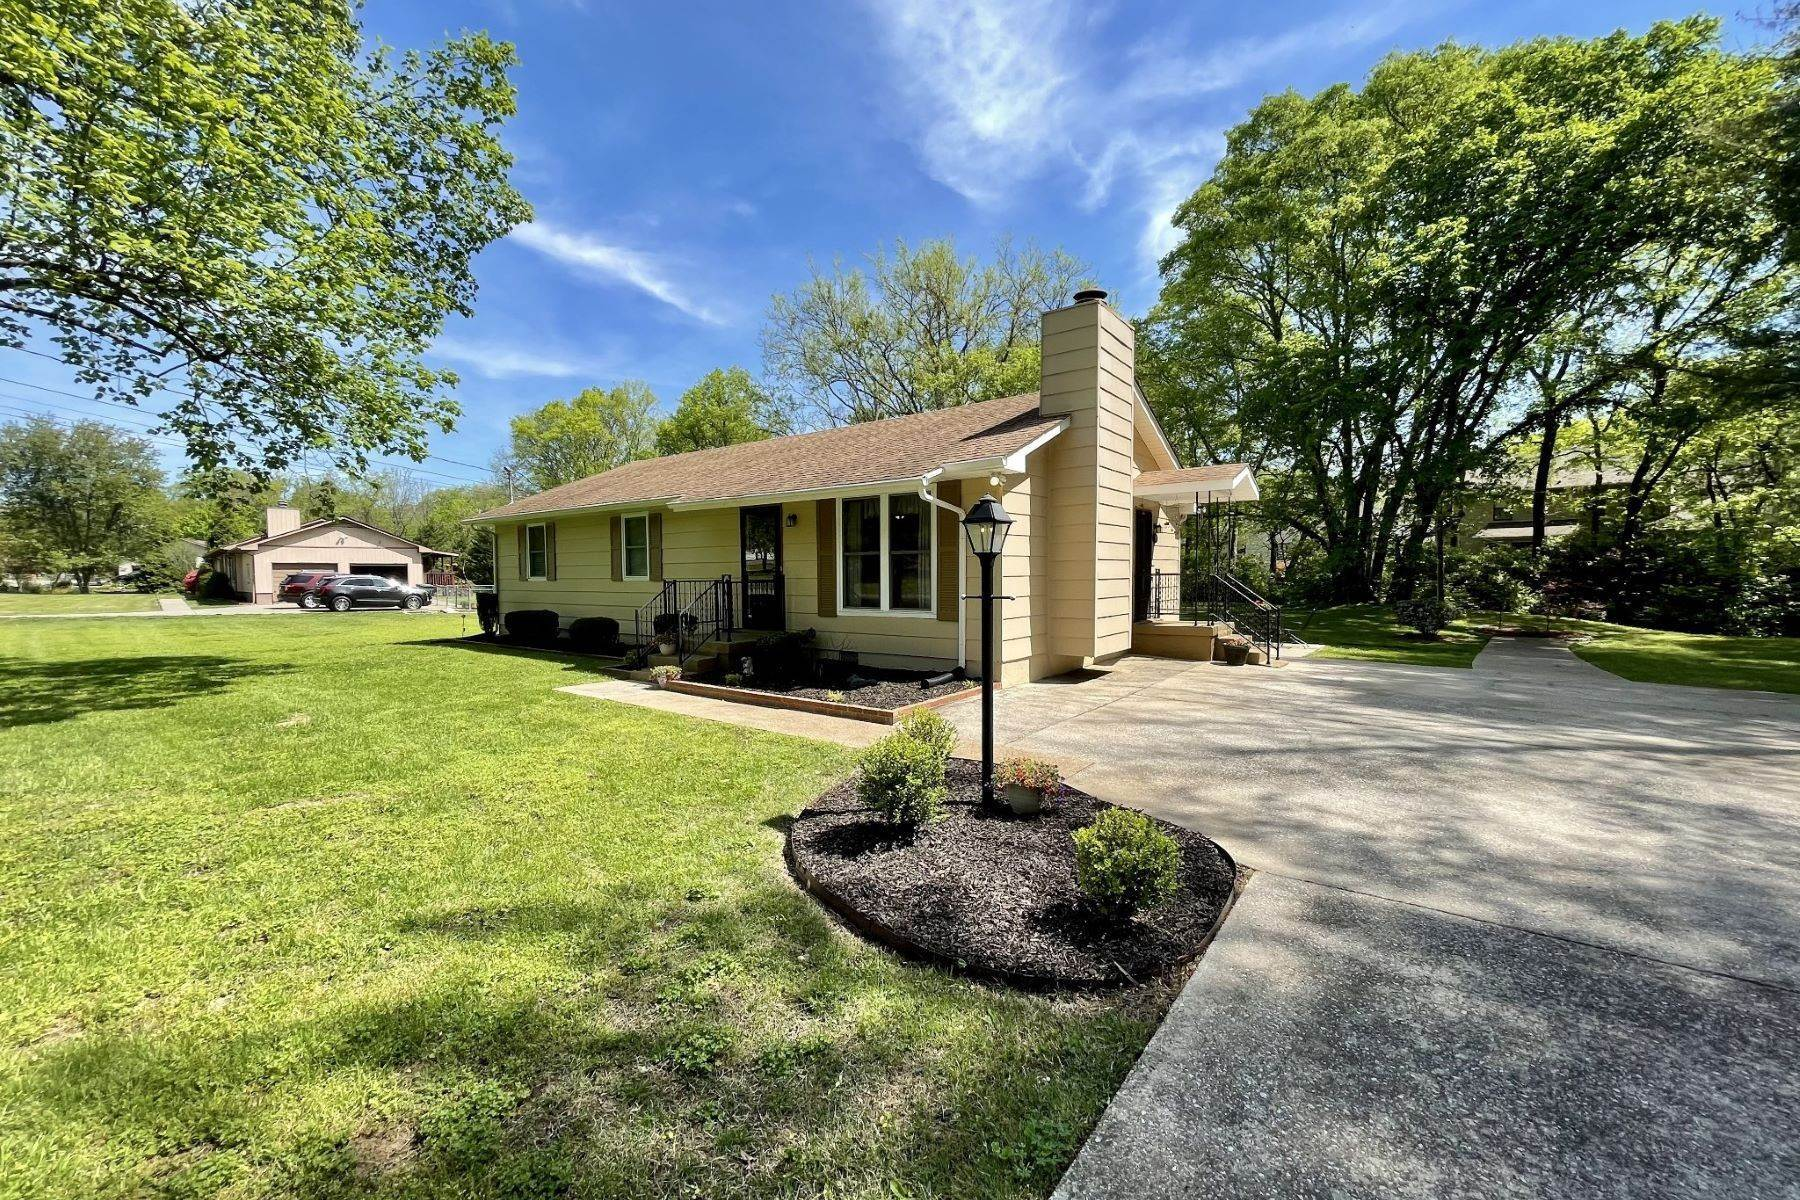 Single Family Homes for Sale at 608 Mount Pisgah Court, Nashville, TN 37211 608 Mount Pisgah Court Nashville, Tennessee 37211 United States